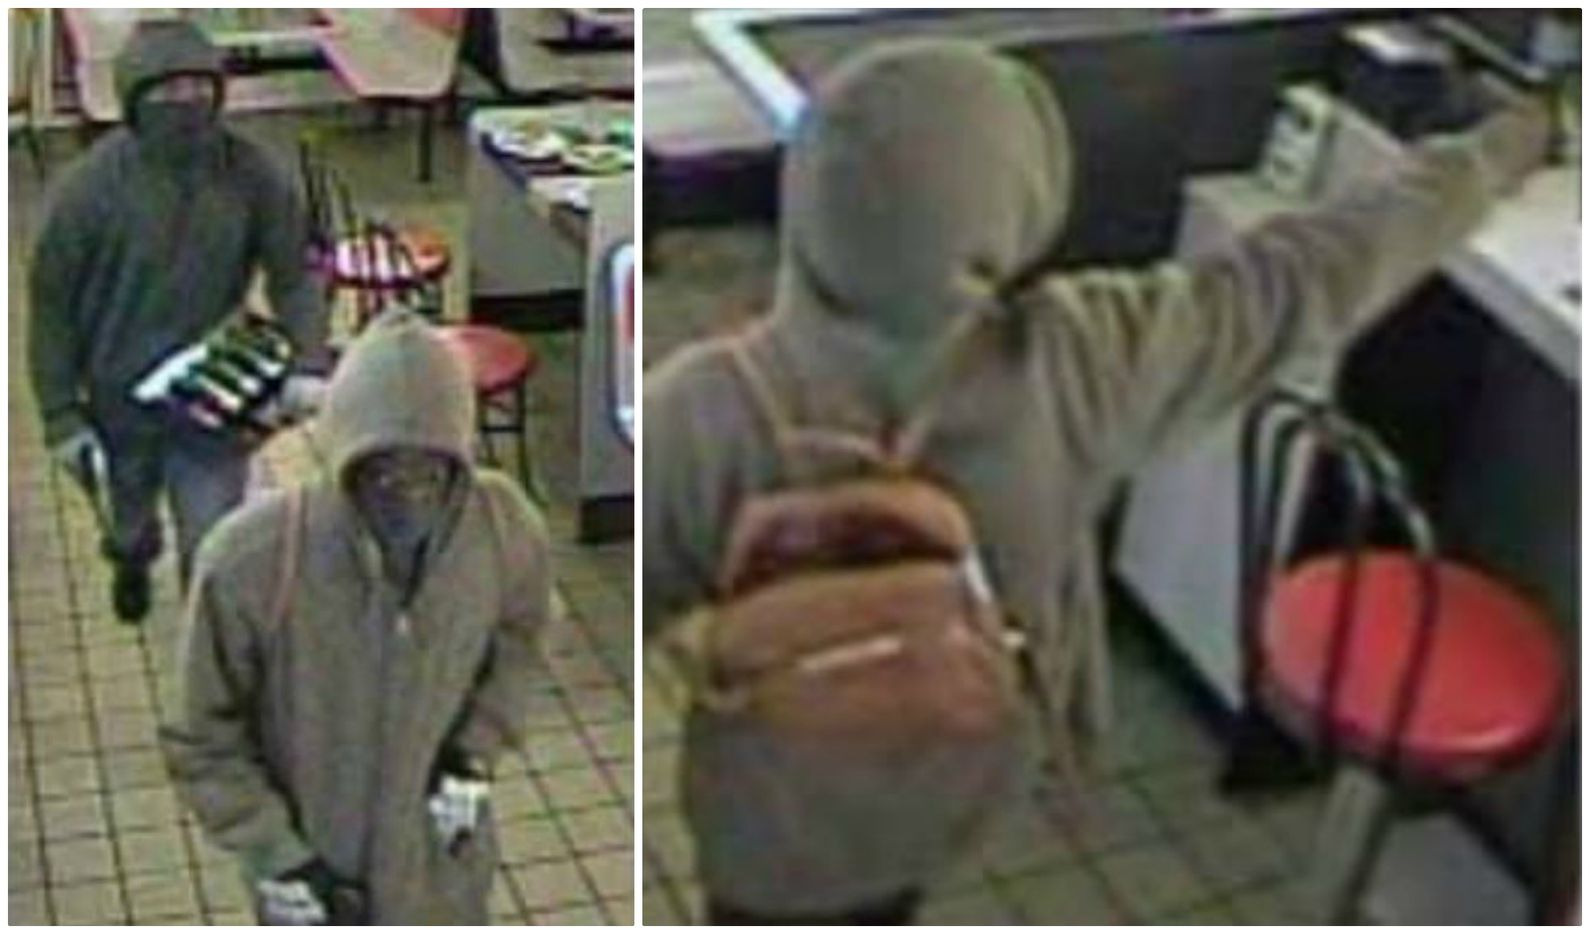 The robbers were described as black men in the early 20s. Both wore gloves and black cloths over their faces. One wore a gray hoodie, and the other wore a green hooded jacket and carried a tan backpack.